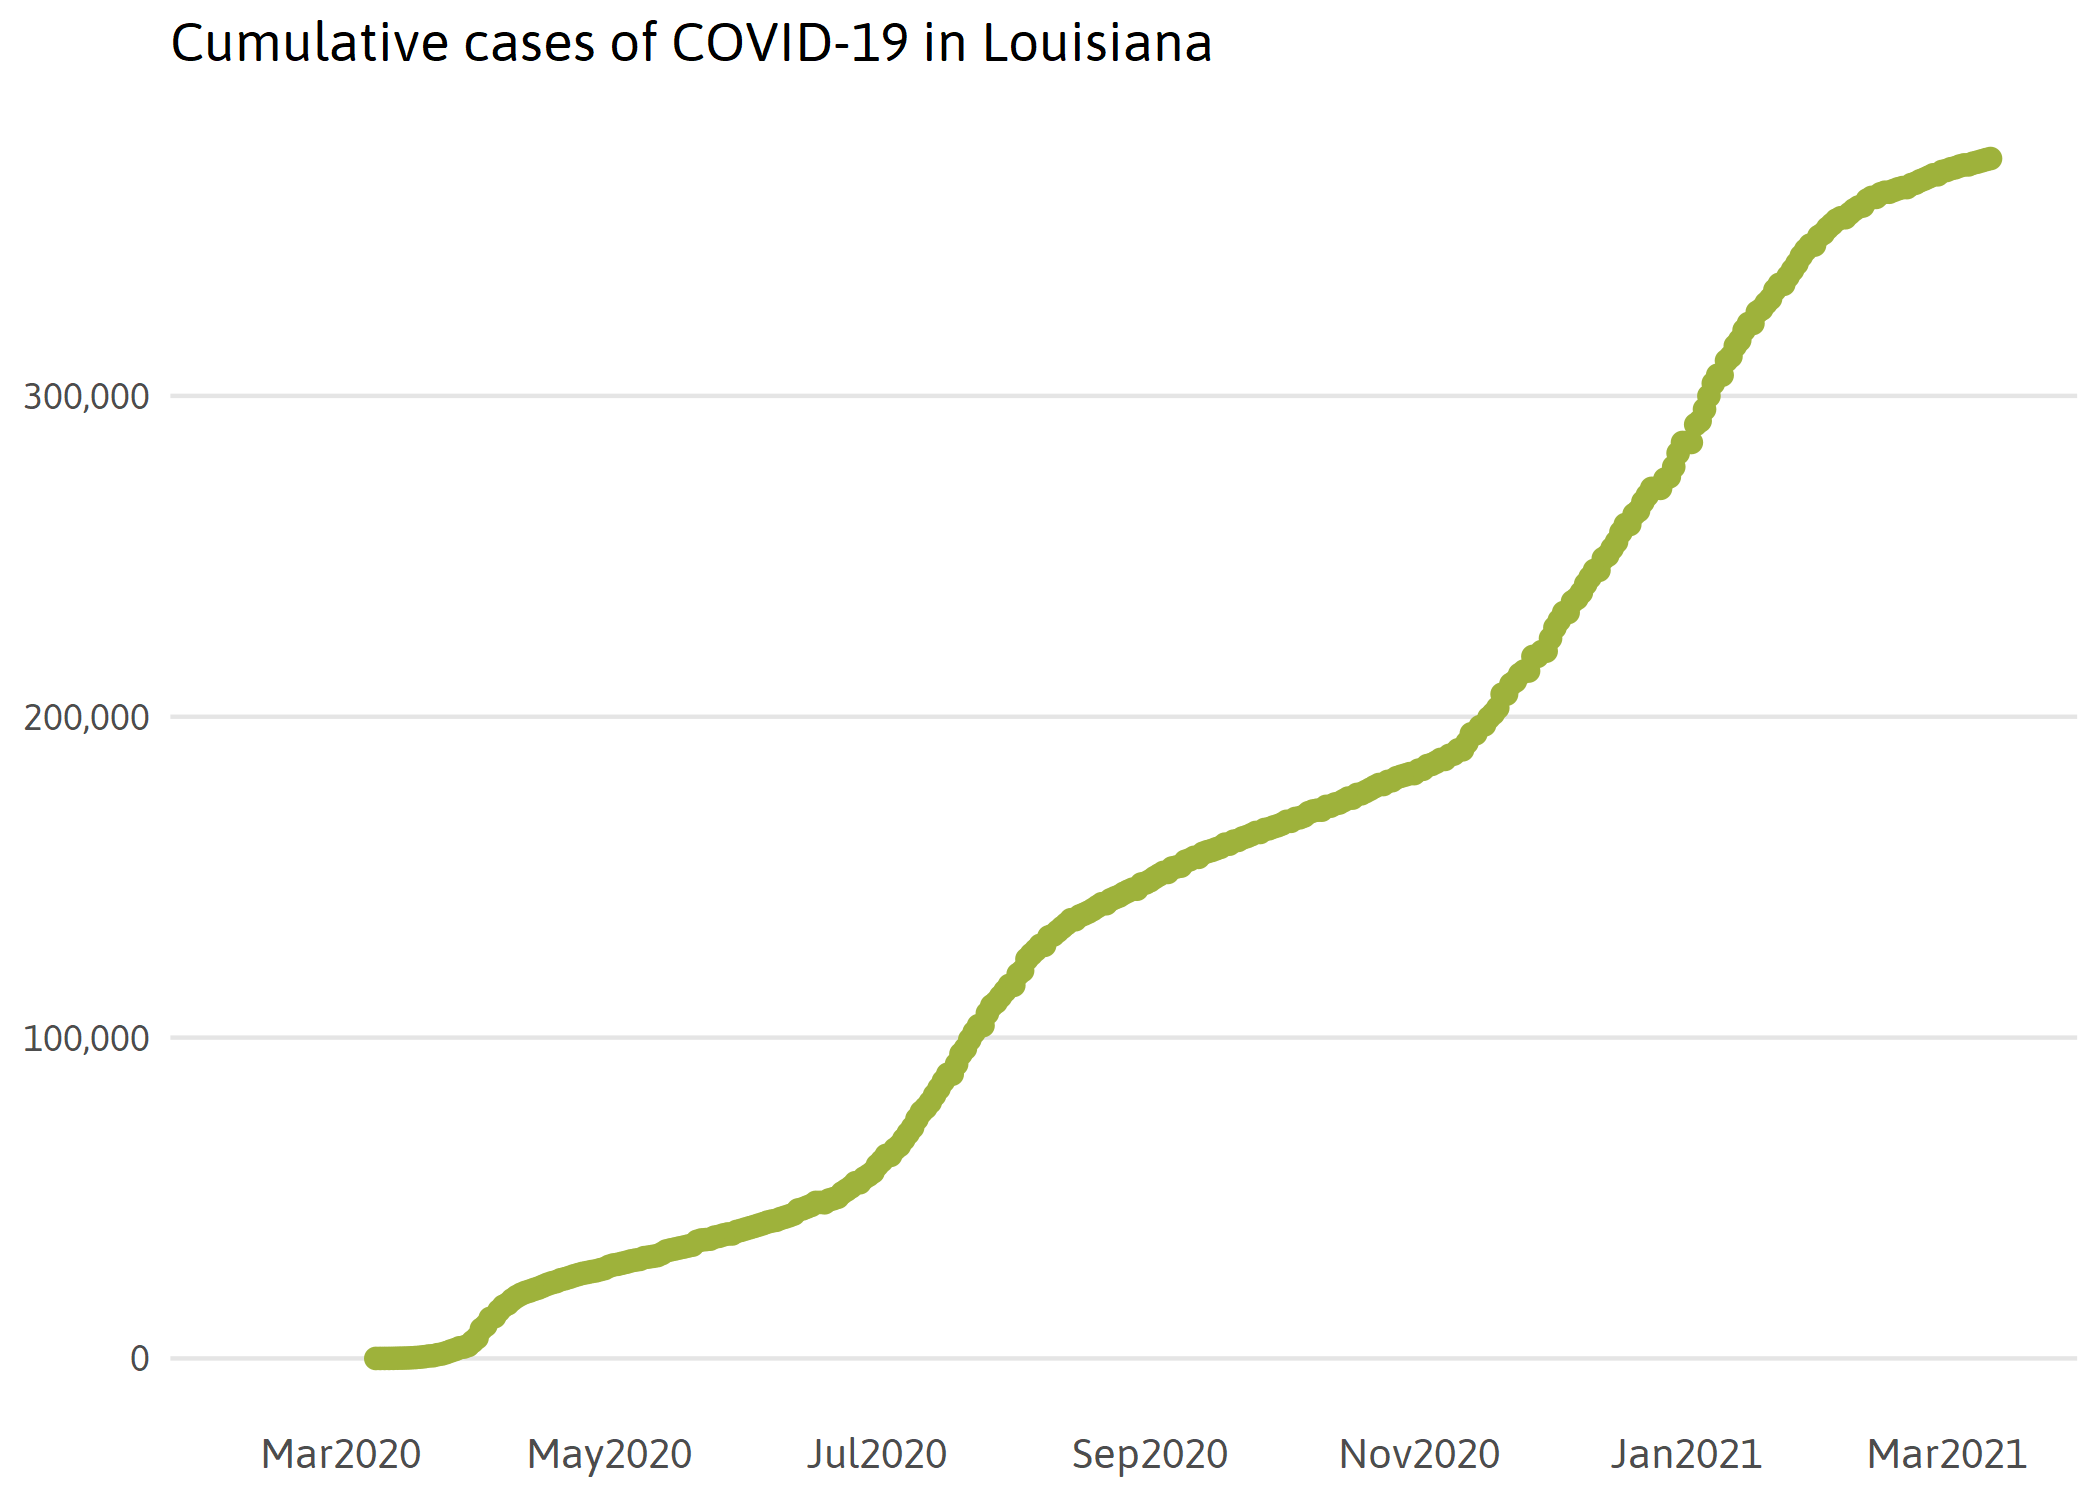 Confirmed cases of COVID-19 in Louisiana